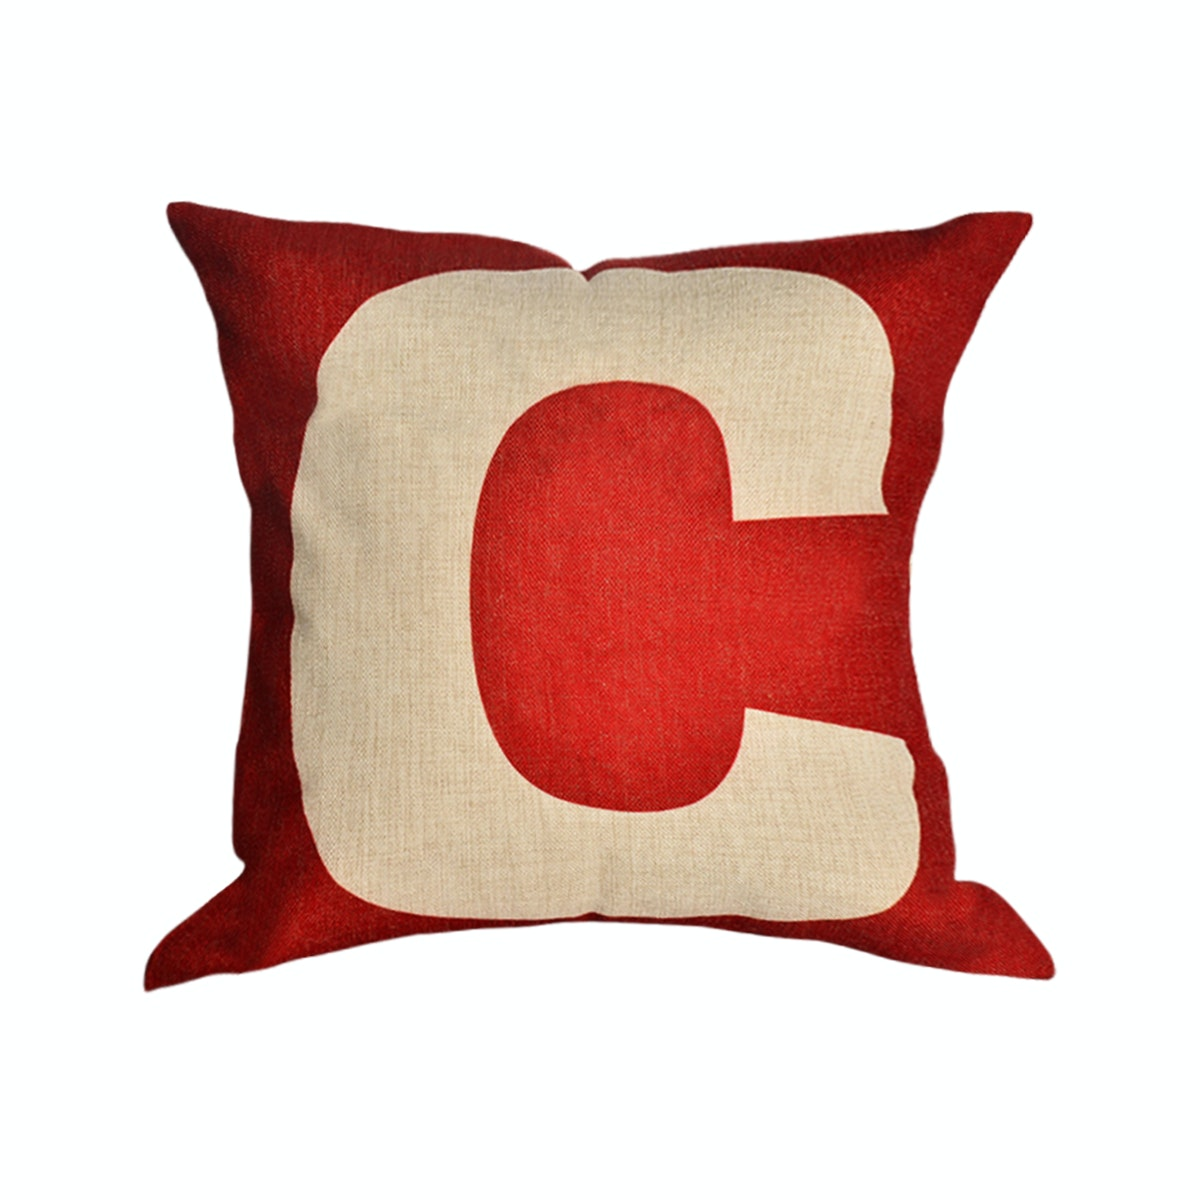 OLC Bantal Sofa  Decoration Motif Capital C Q3383